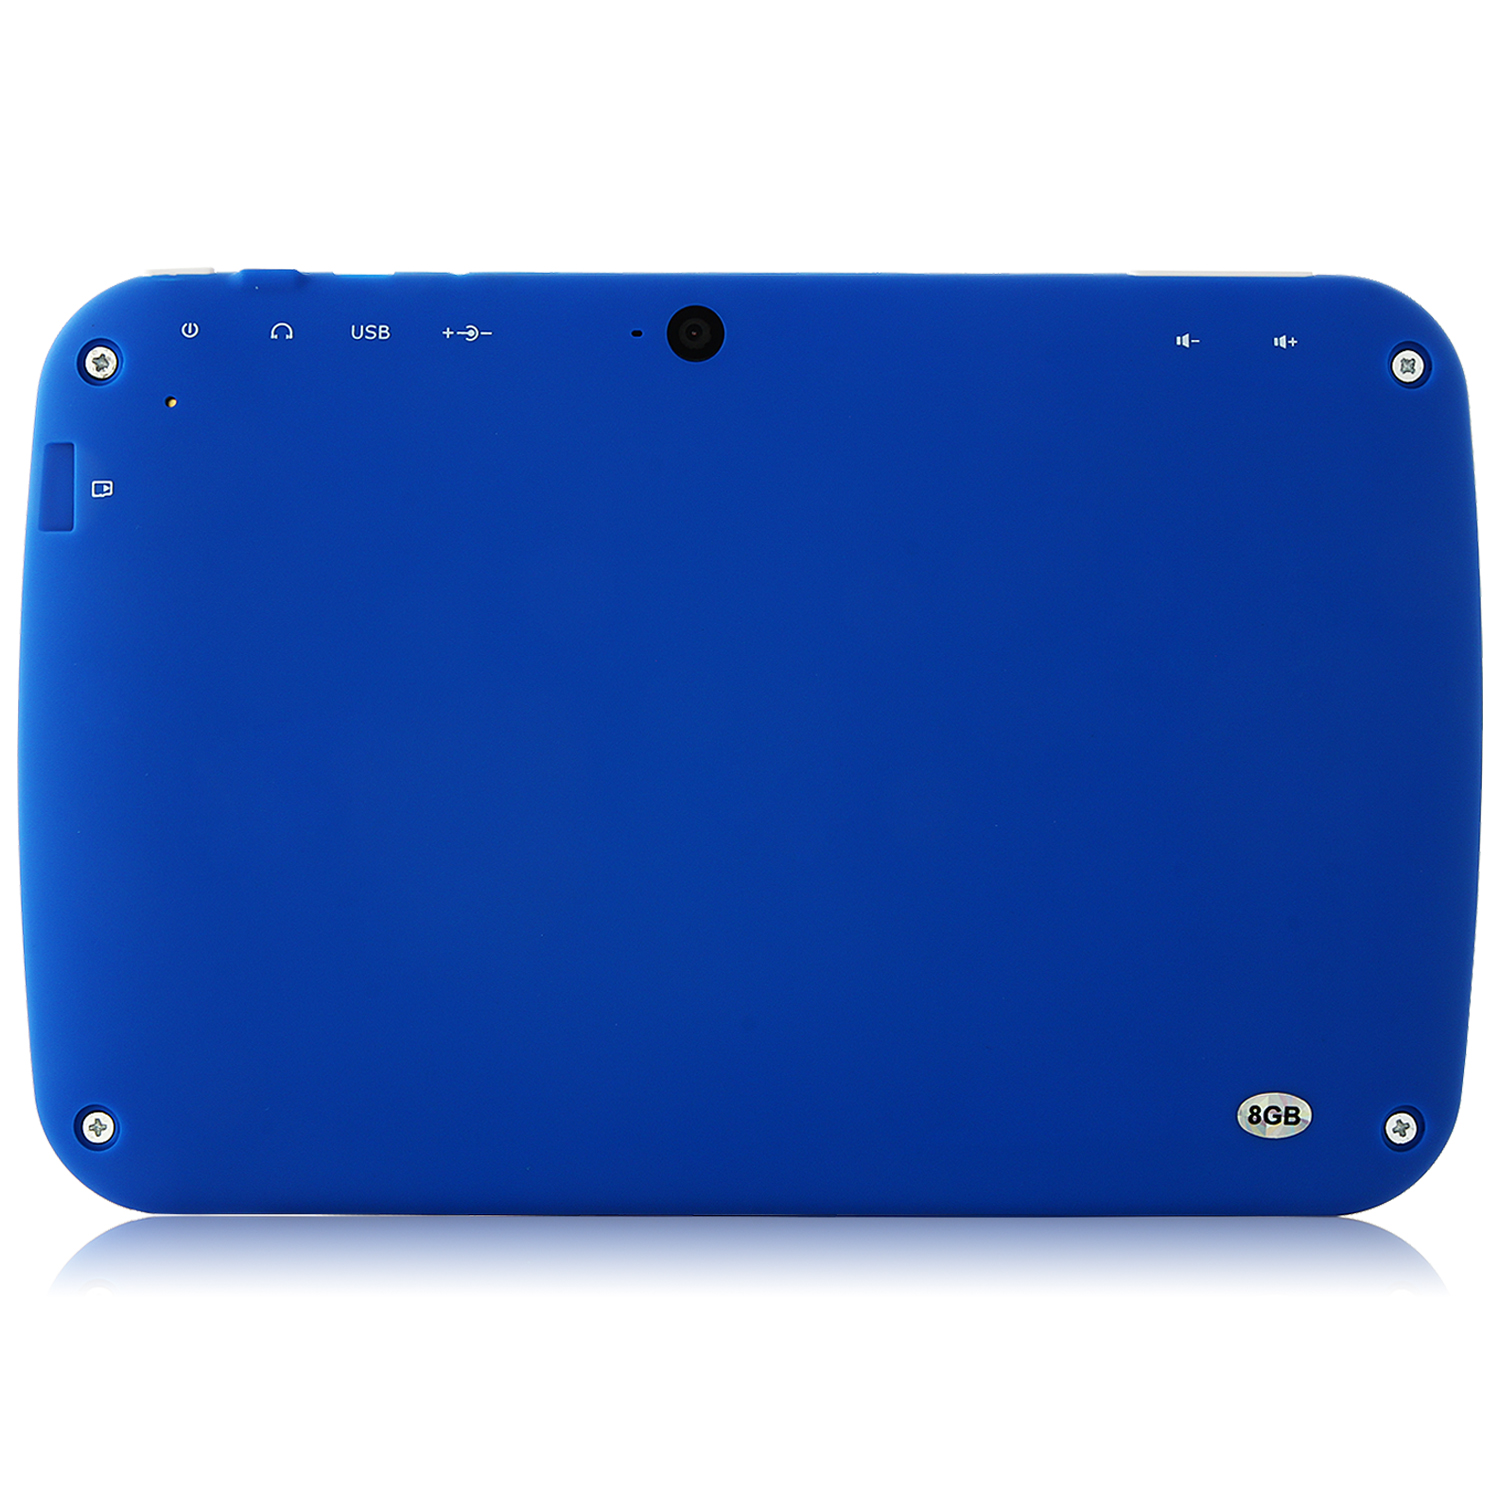 MTP346 R70AC-D KIDS Tablet PC Quad Core RK3126 1.2GHz 7.0 Inch Android 4.4 8GB Blue